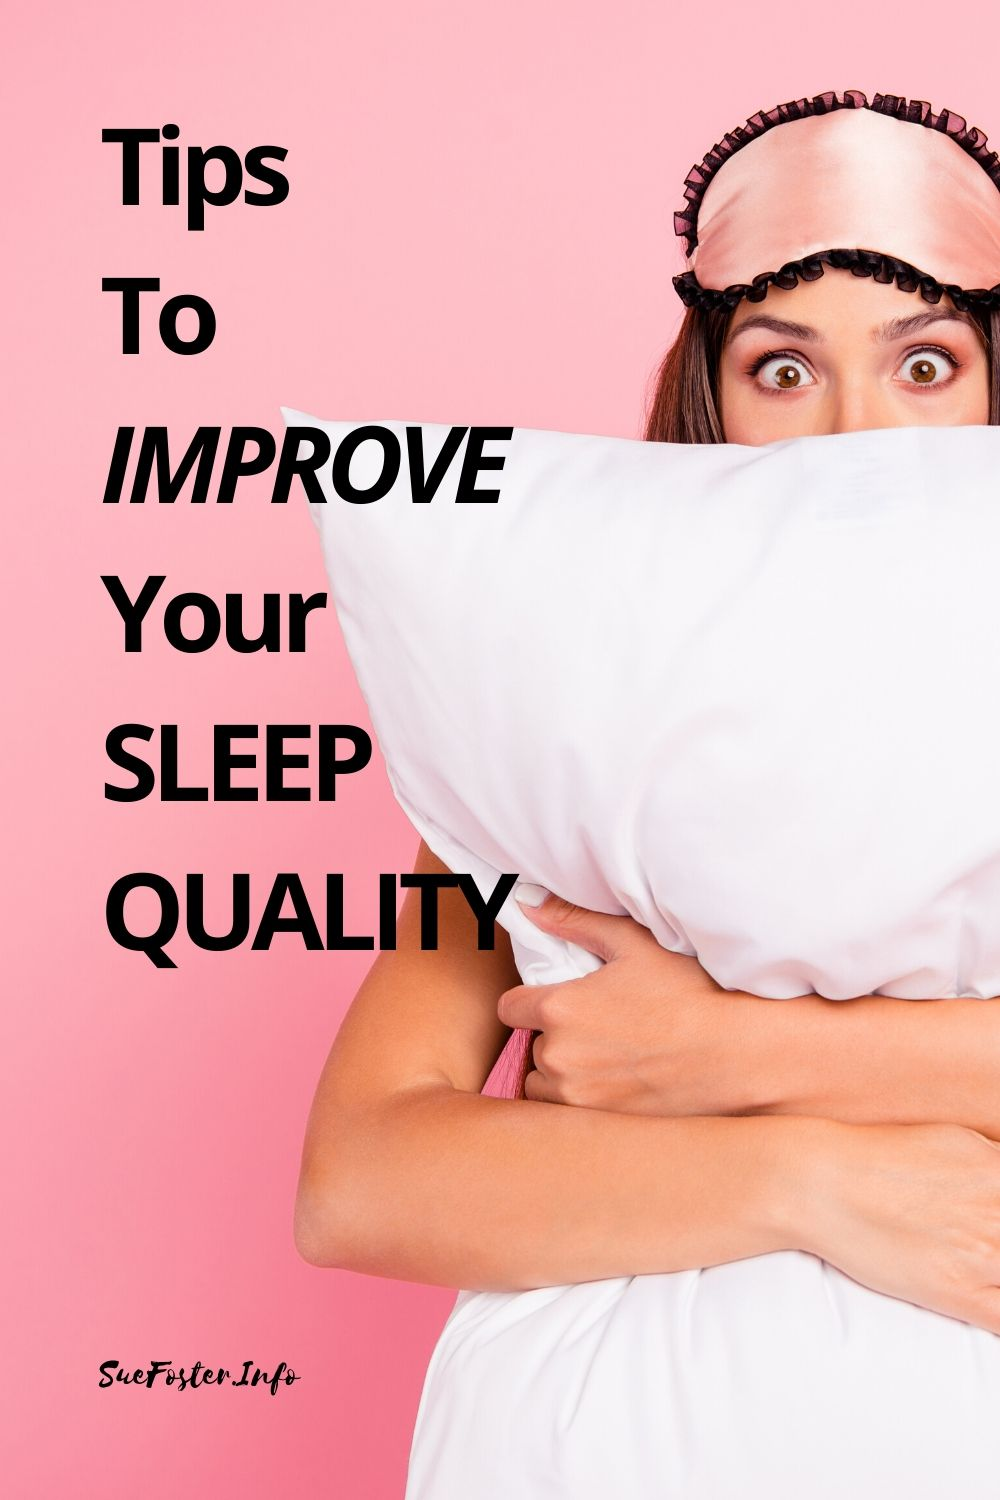 Check out these tips to help improve your sleep quality.